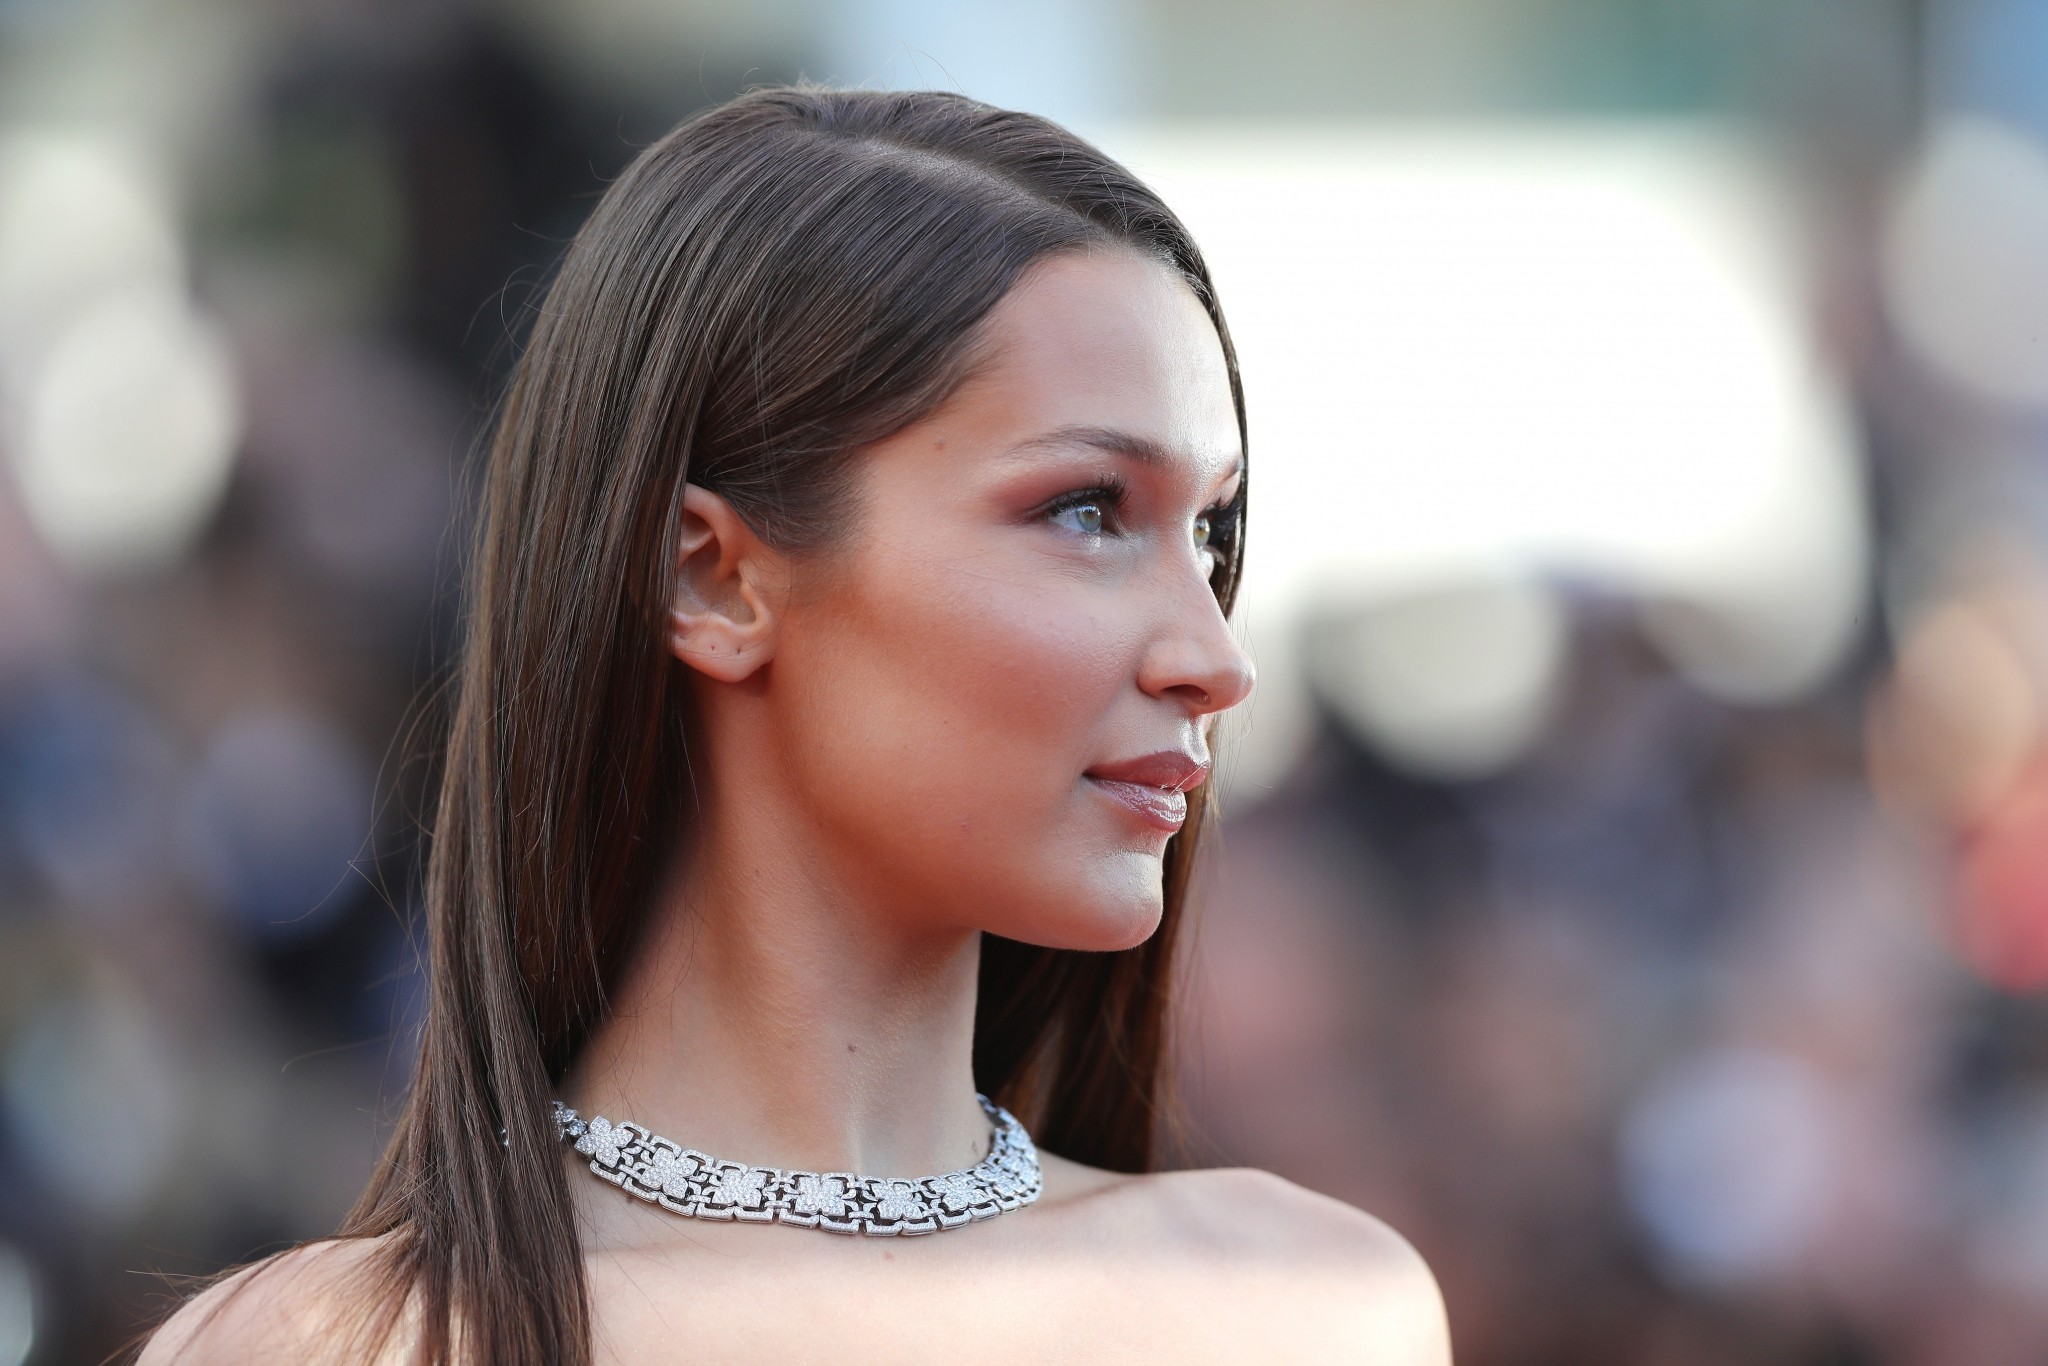 All the Scene-Stealing Beauty Looks at Cannes